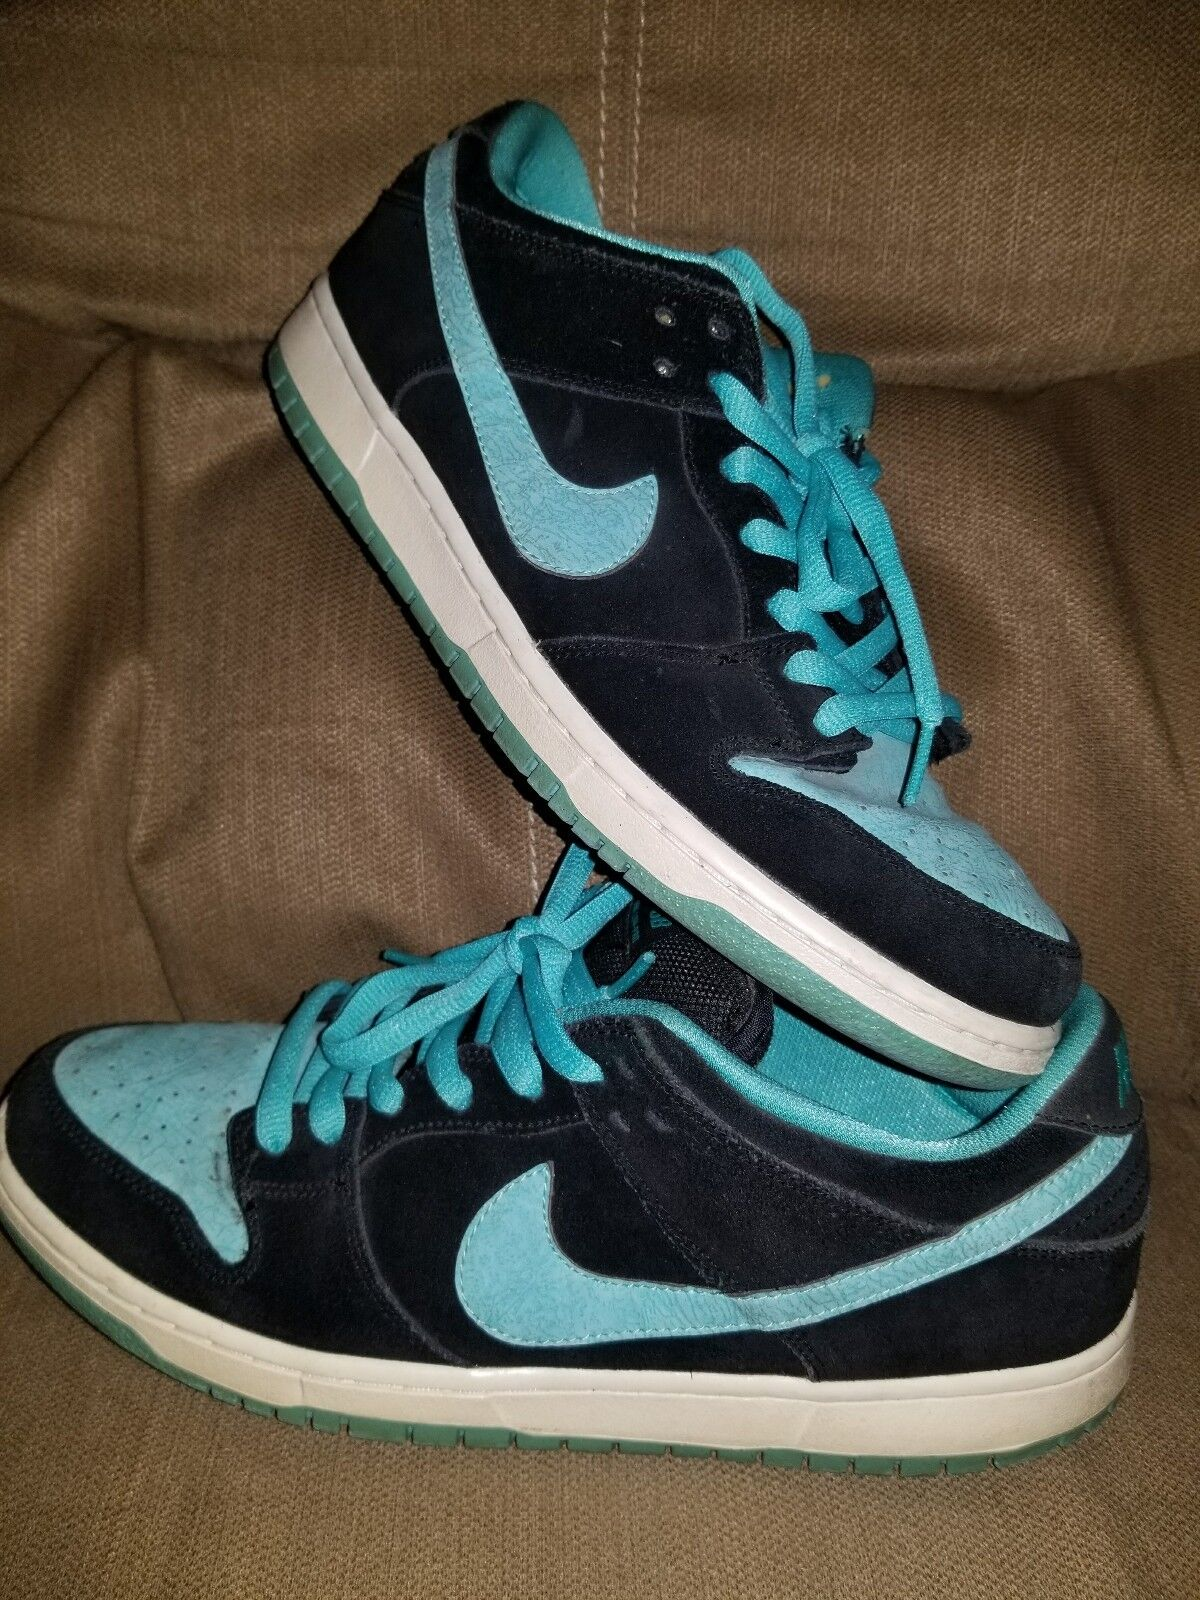 NIKE DUNK LOW PRO SB CLEAR JADE 304292 030 Price reduction best-selling model of the brand